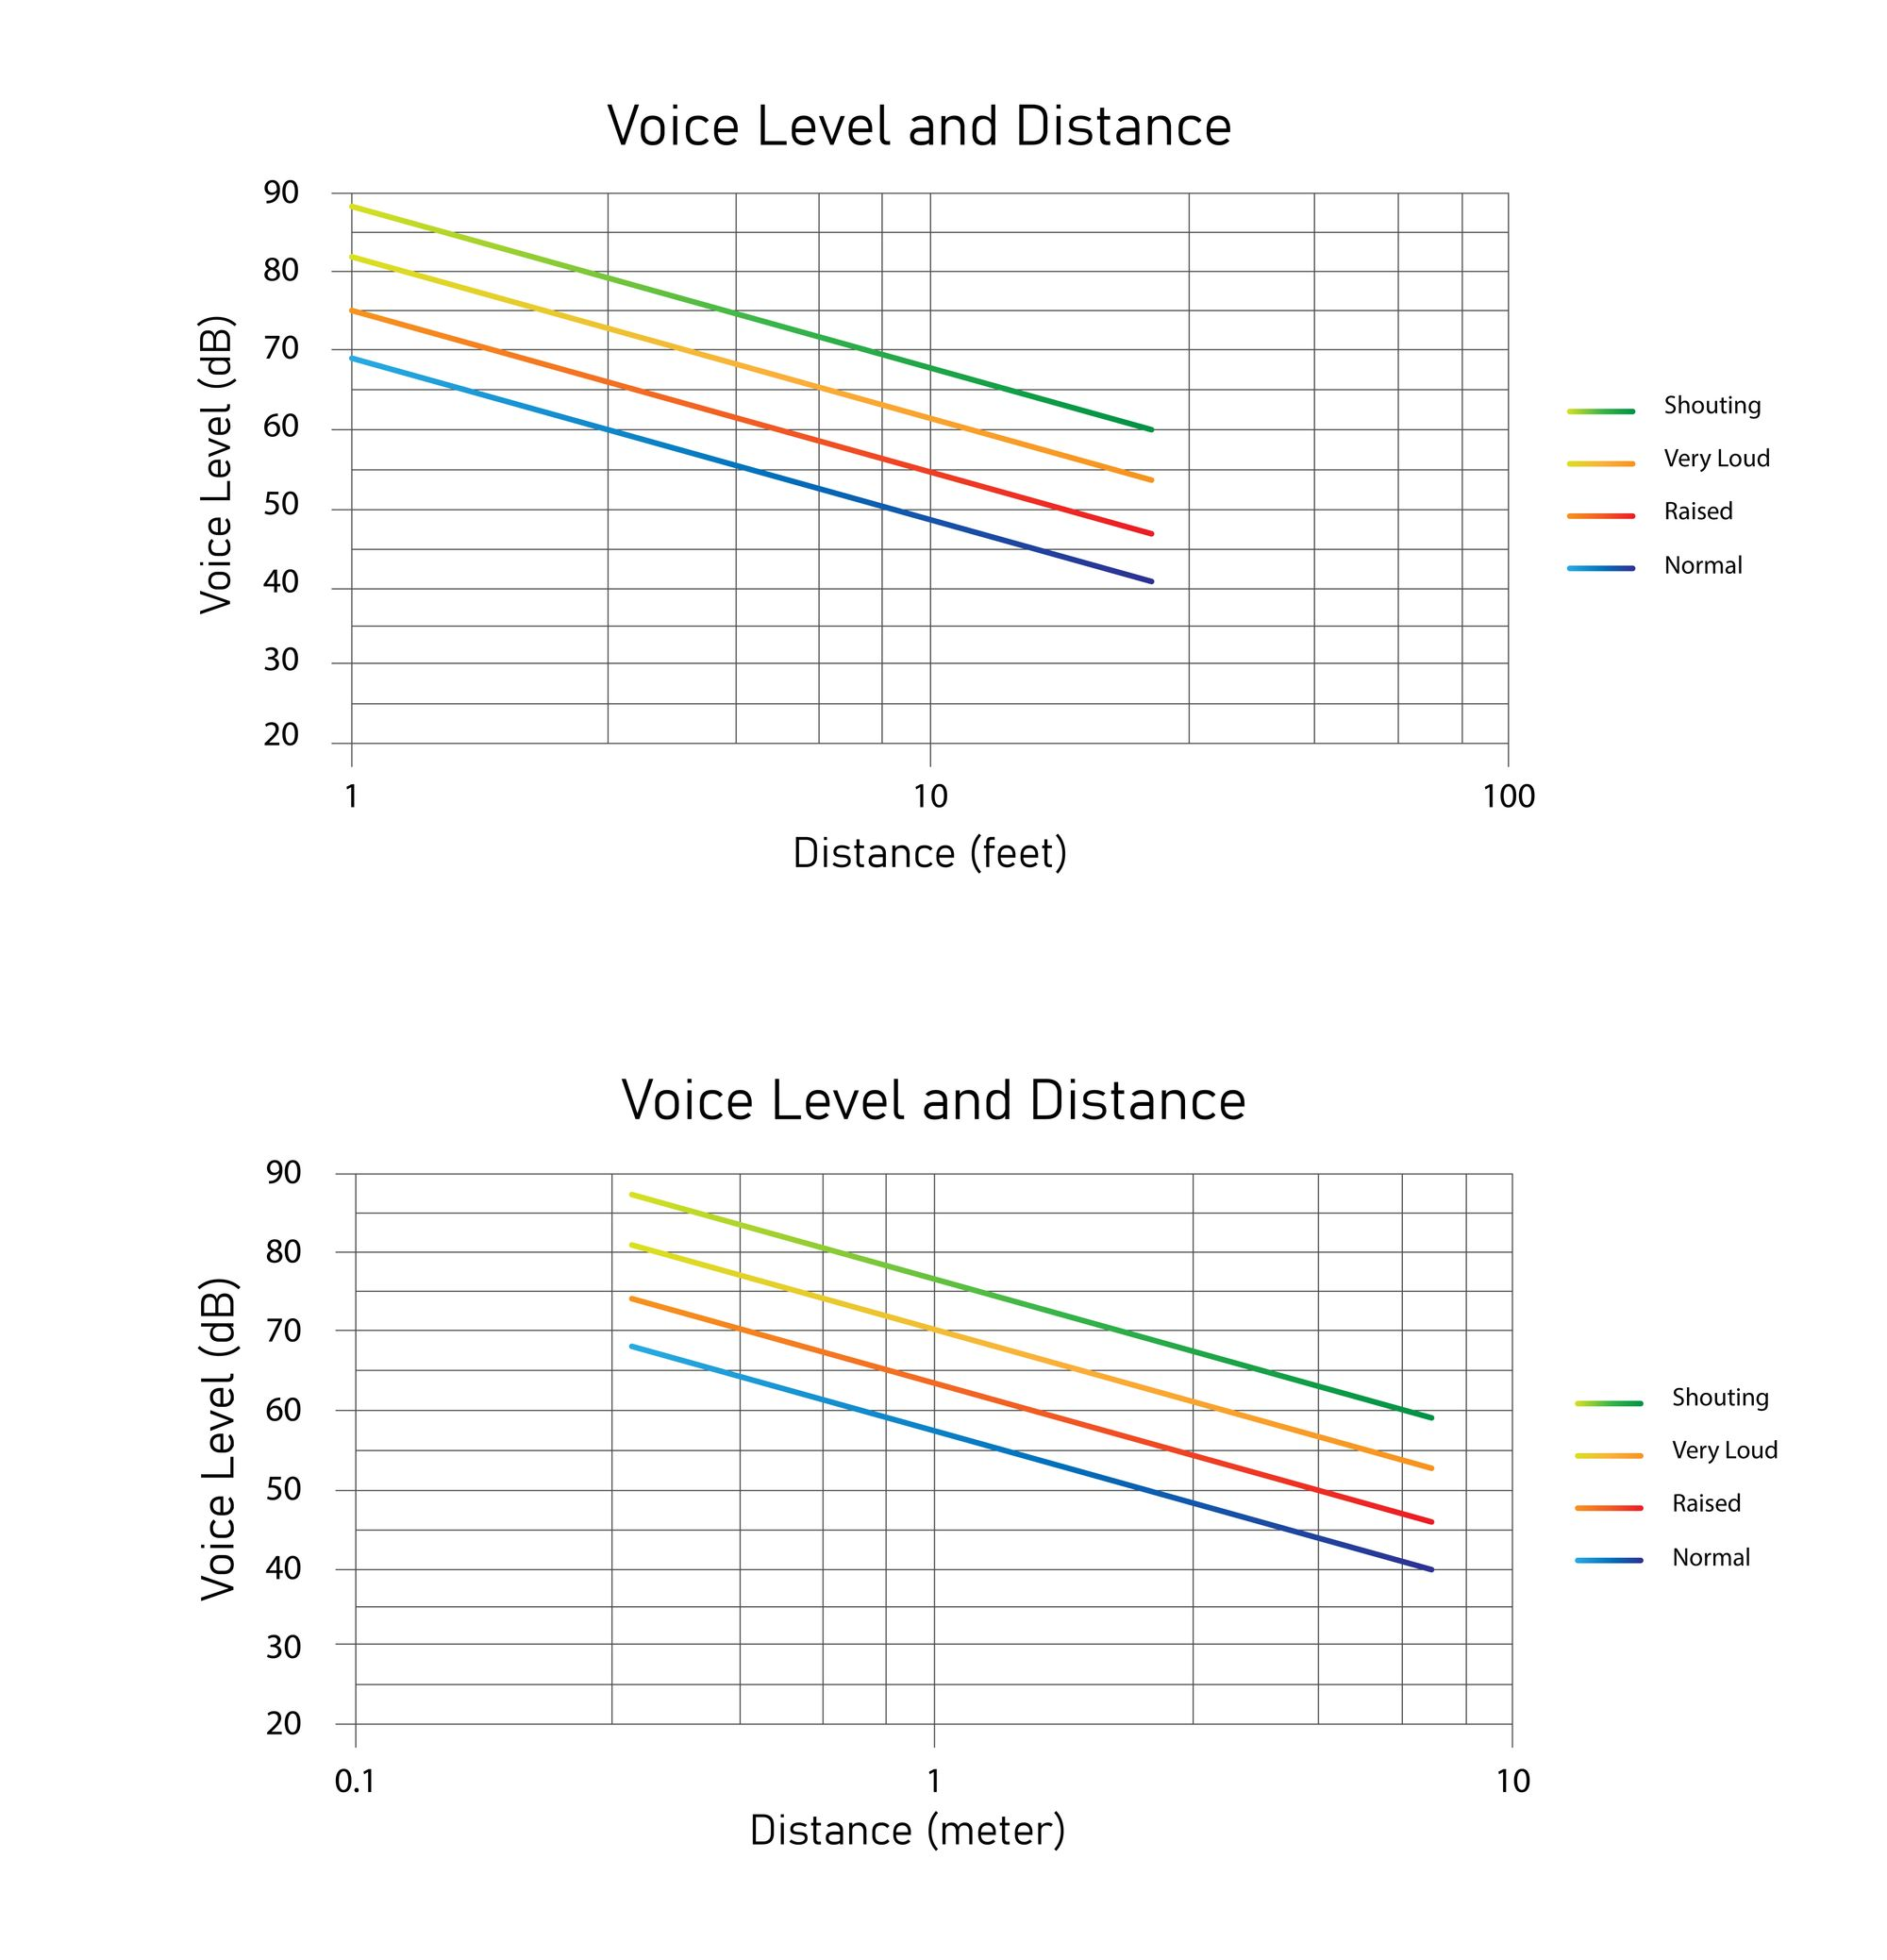 How Many Decibels Does A Human Speak Normally